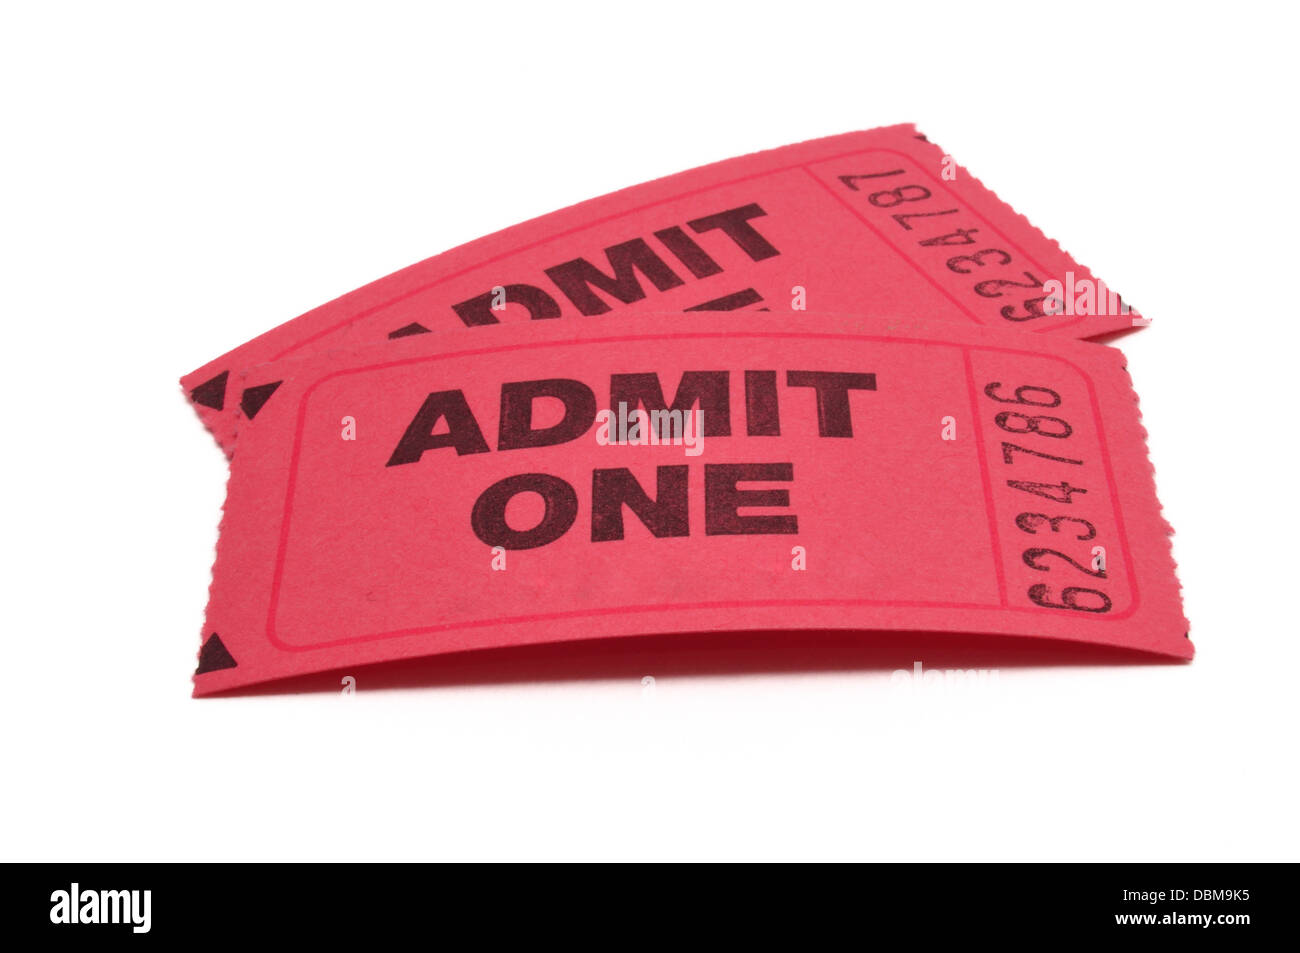 Two tickets - Admit One on white background cut out isolated - Stock Image